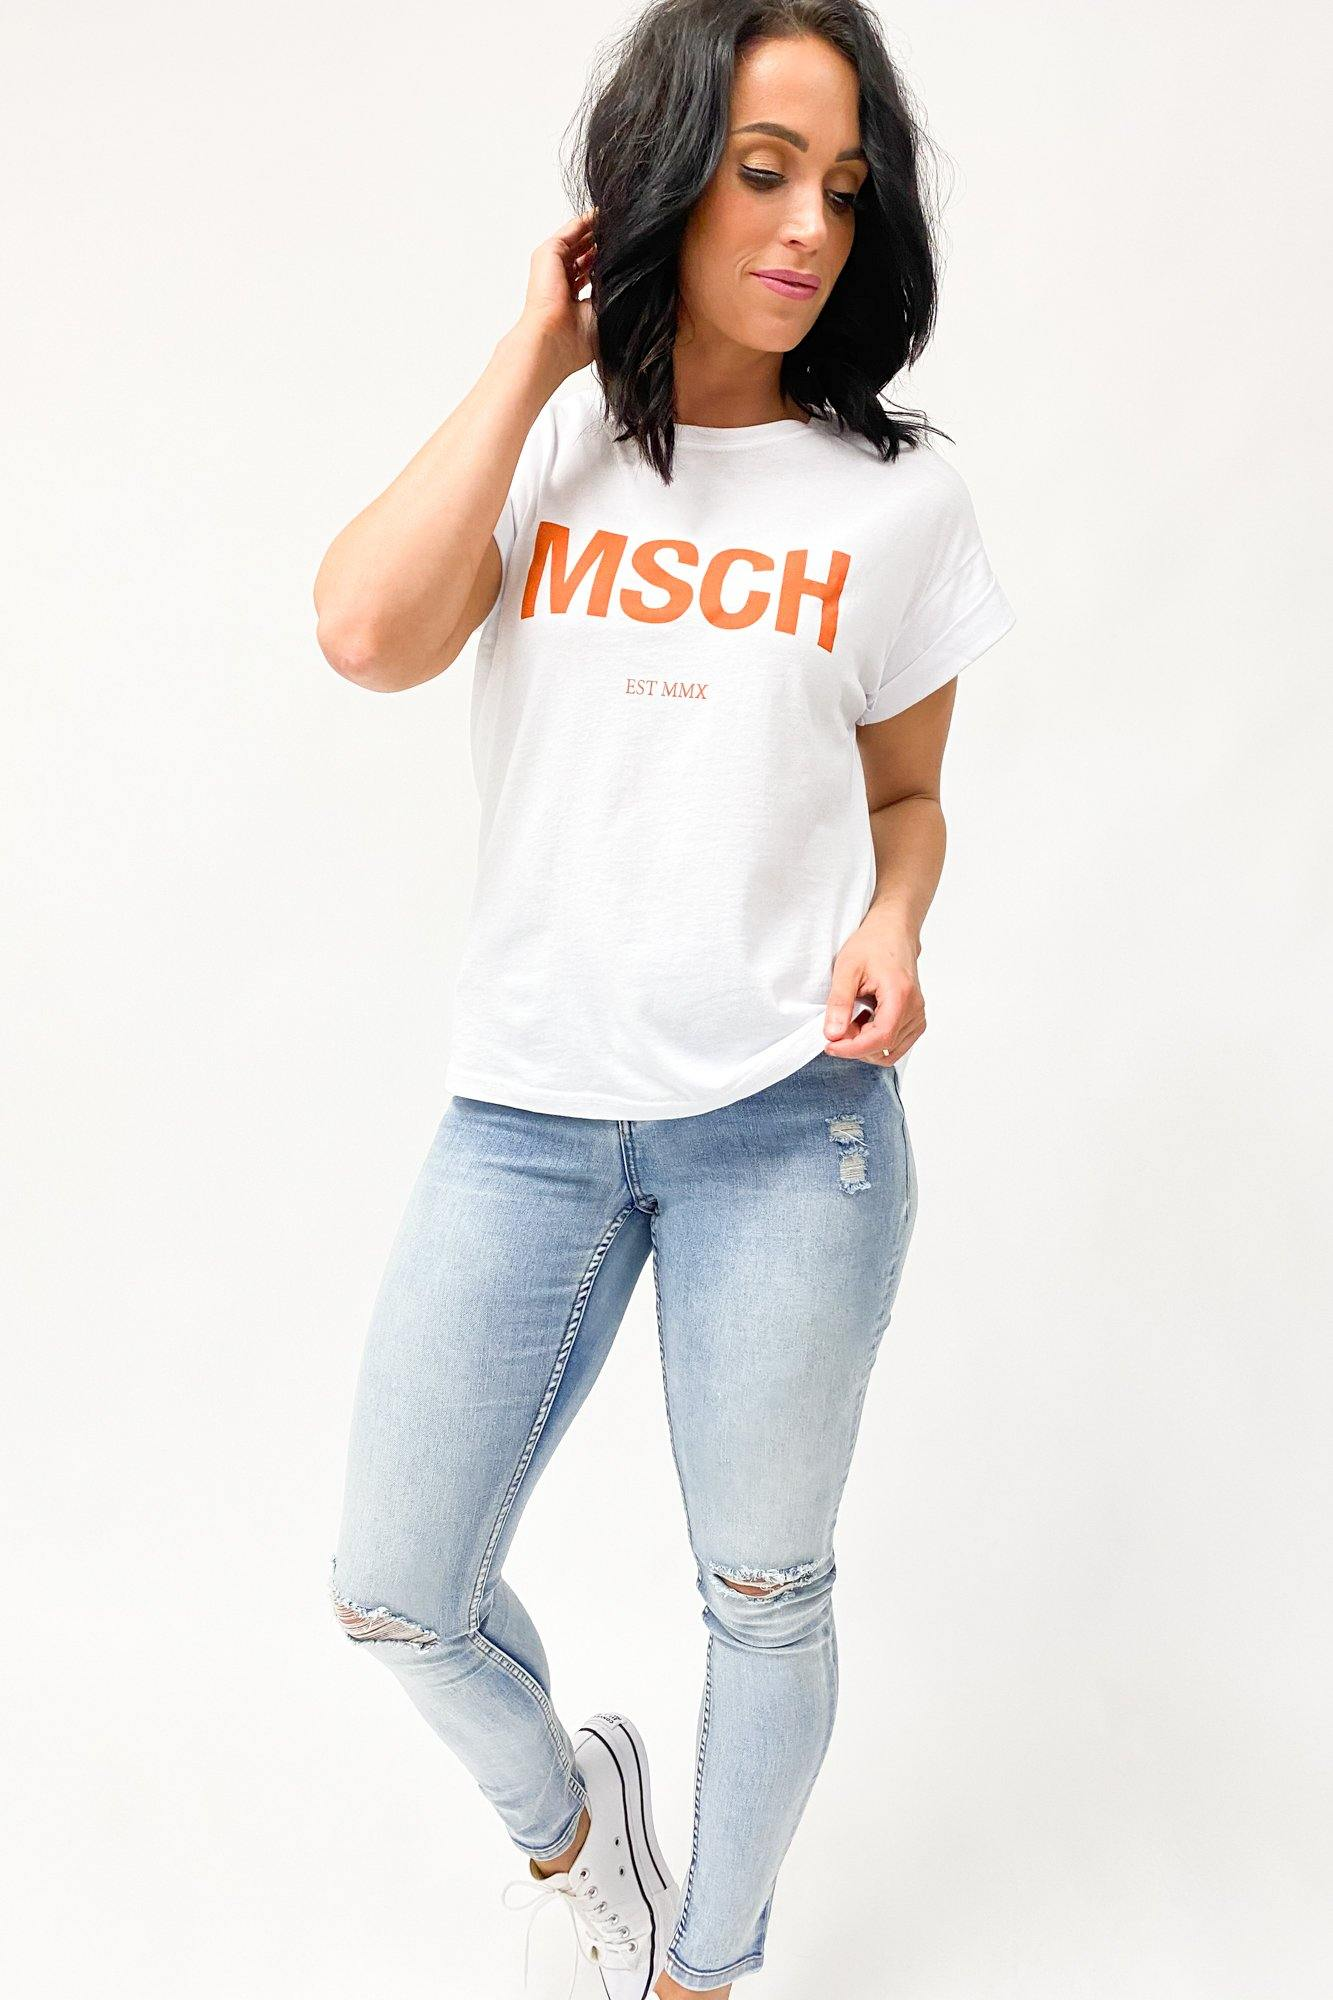 Moss Copenhagen Alva MSCH Tee Bright White Apricot Orange